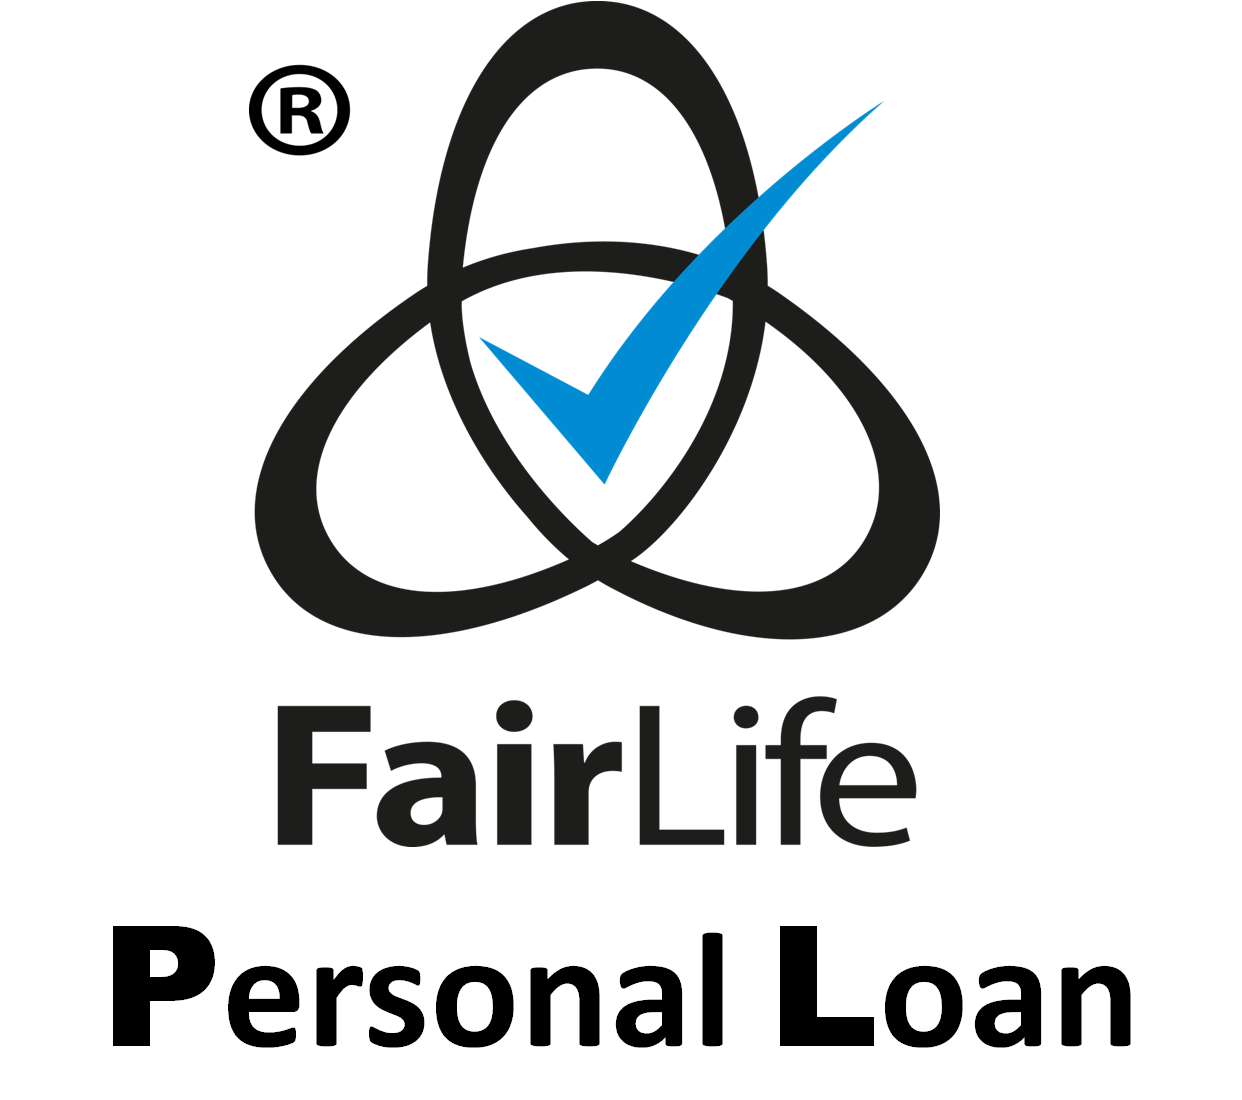 fairlife-logo